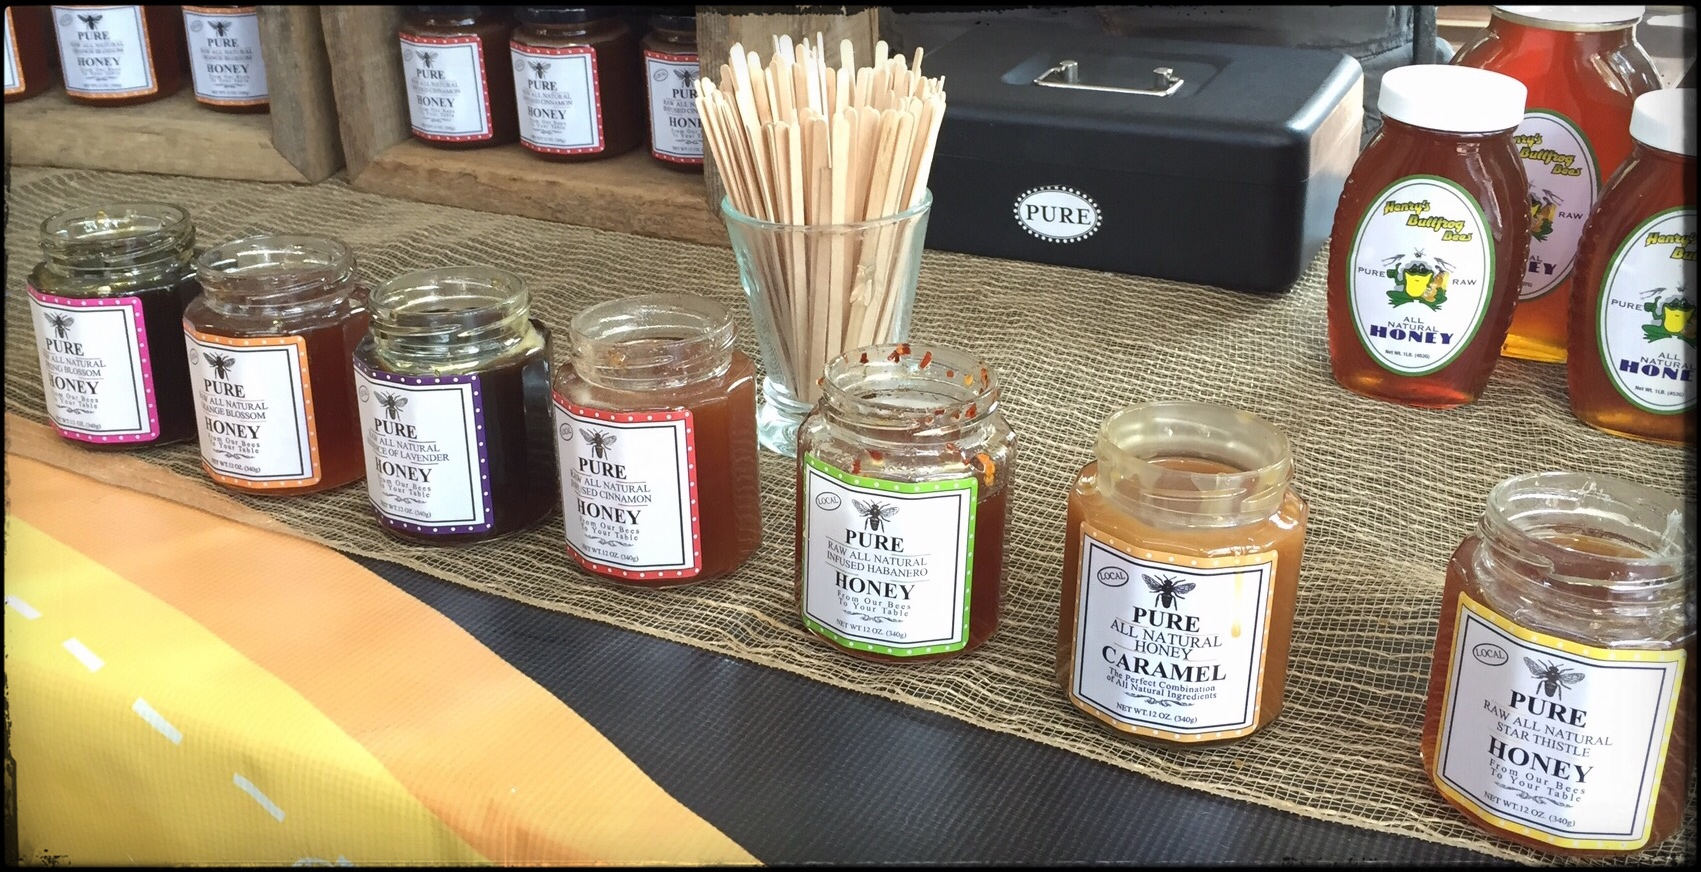 Tasting honey at the farmers market.